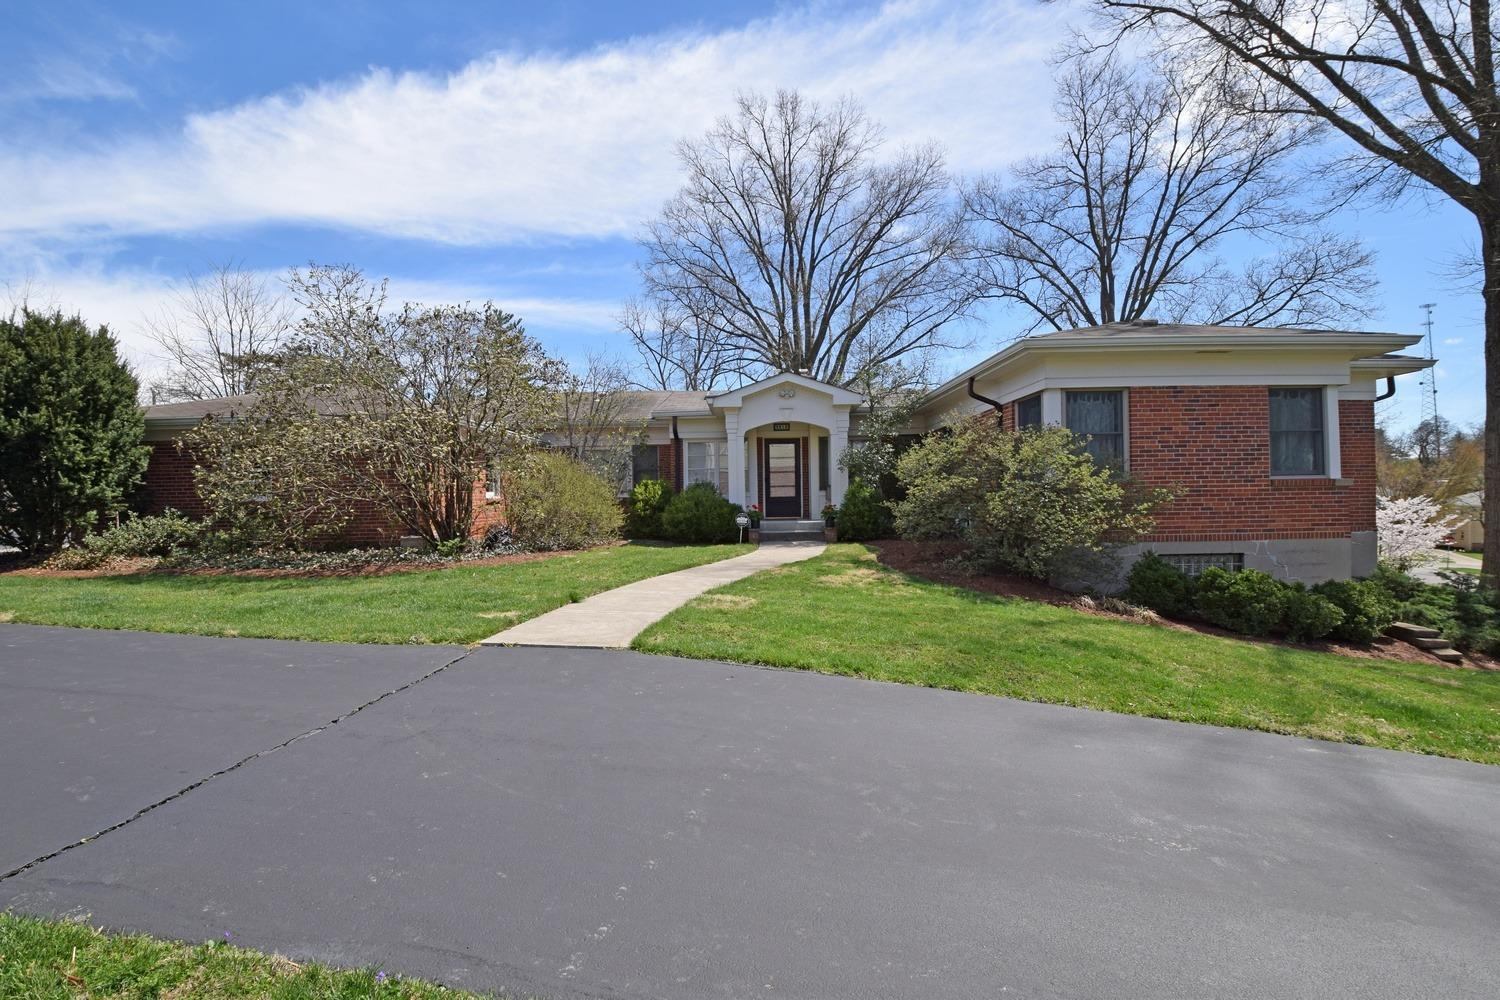 Photo 1 for 2516 Fairhill Dr Mt. Airy, OH 45239